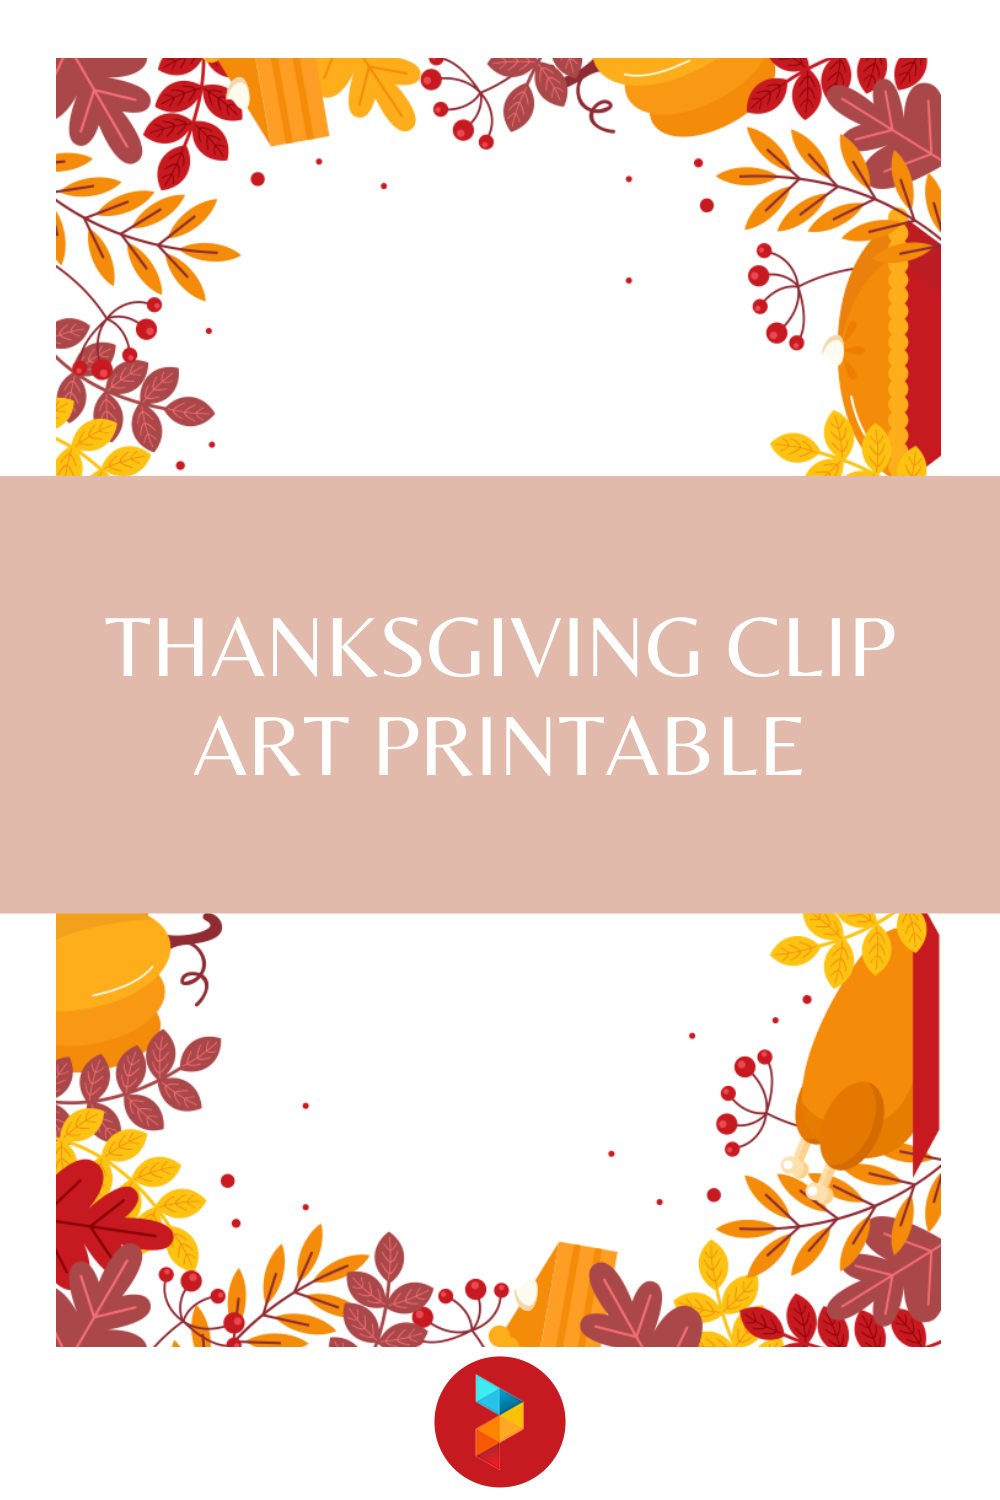 Thanksgiving Clip Art Printable